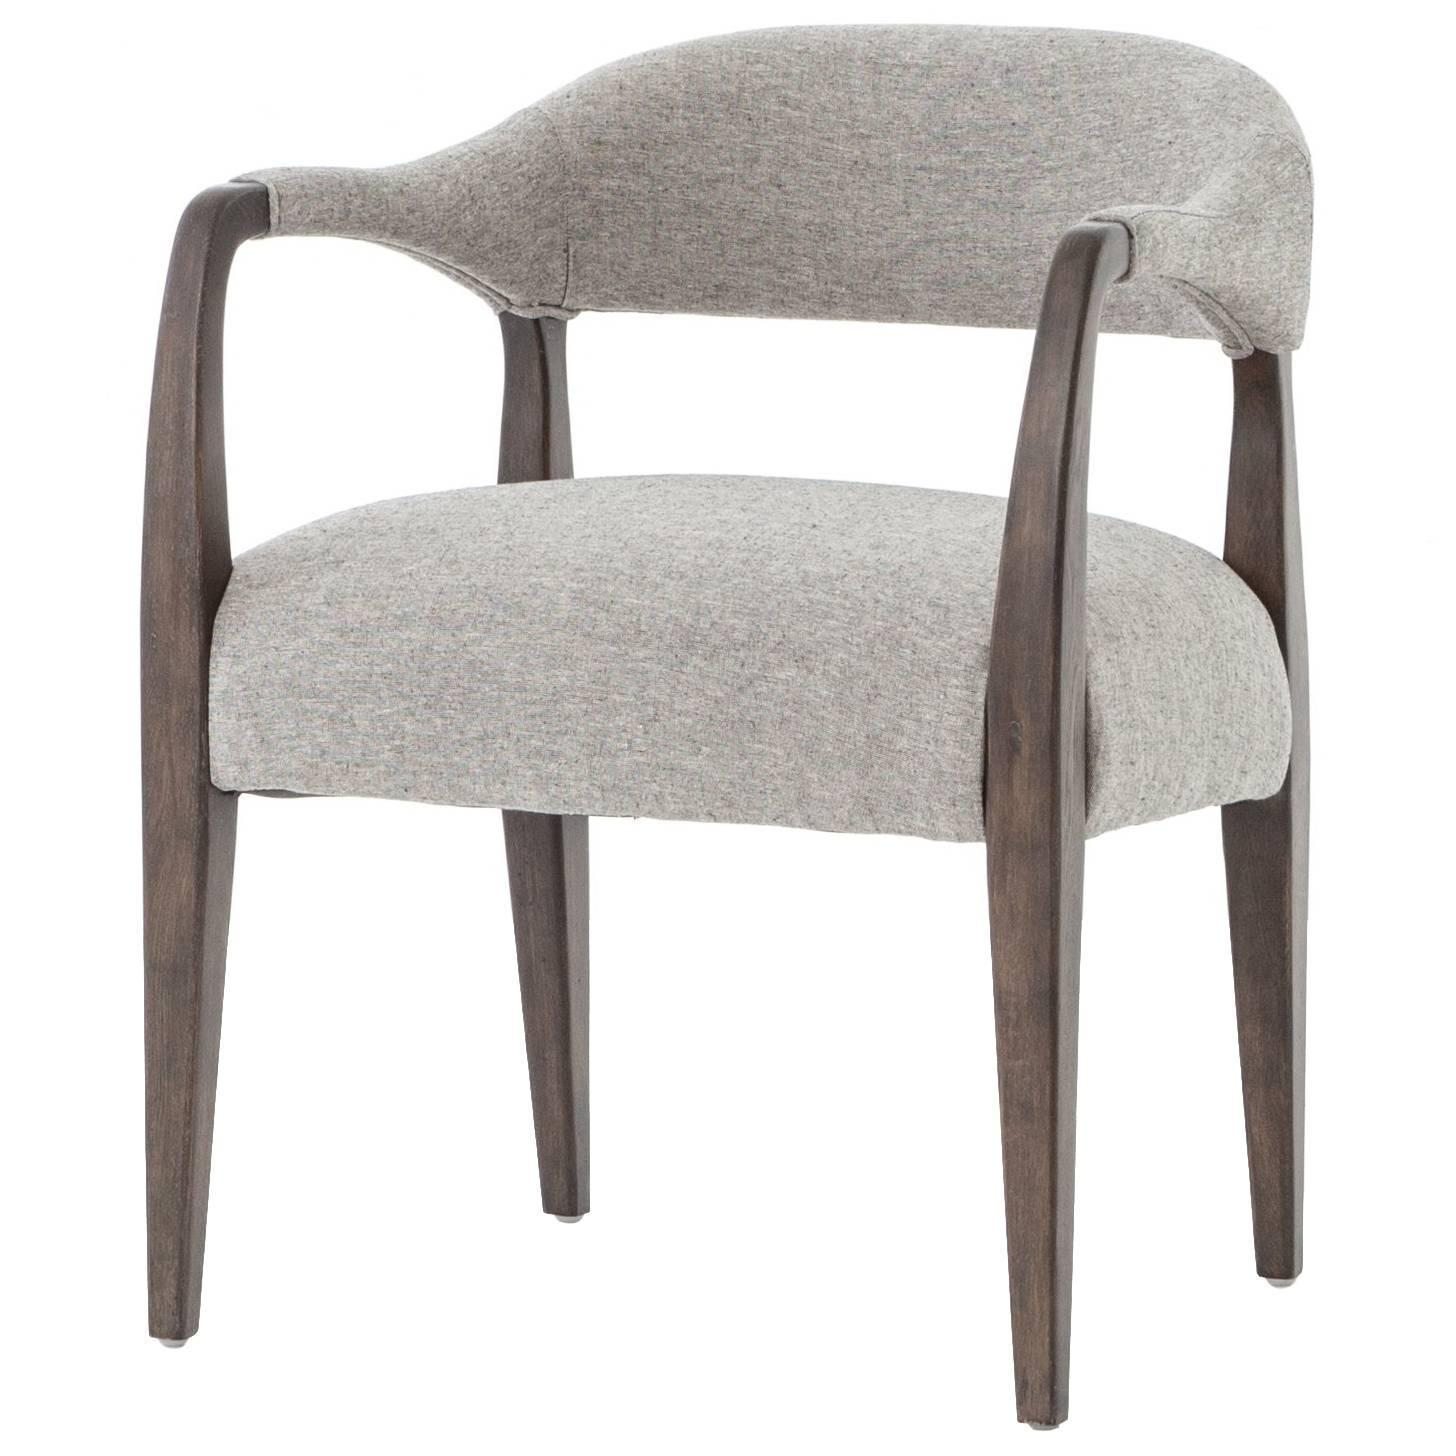 upholstered dining chairs with arms for sale at 1stdibs sloped arm dining chairs 187 gallery dining